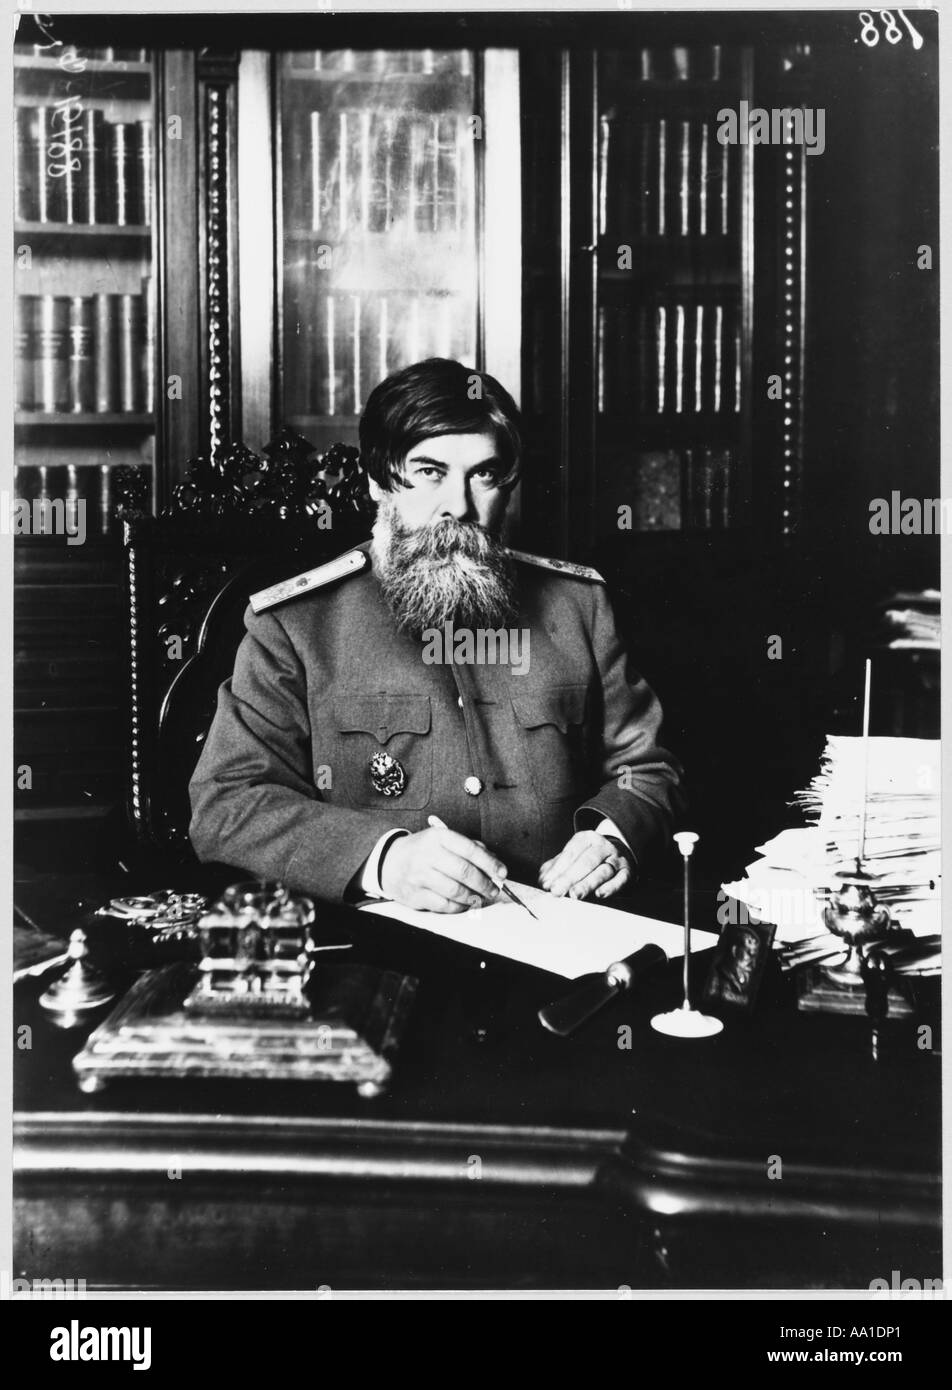 Vladimir Bekhterev Stock Photo